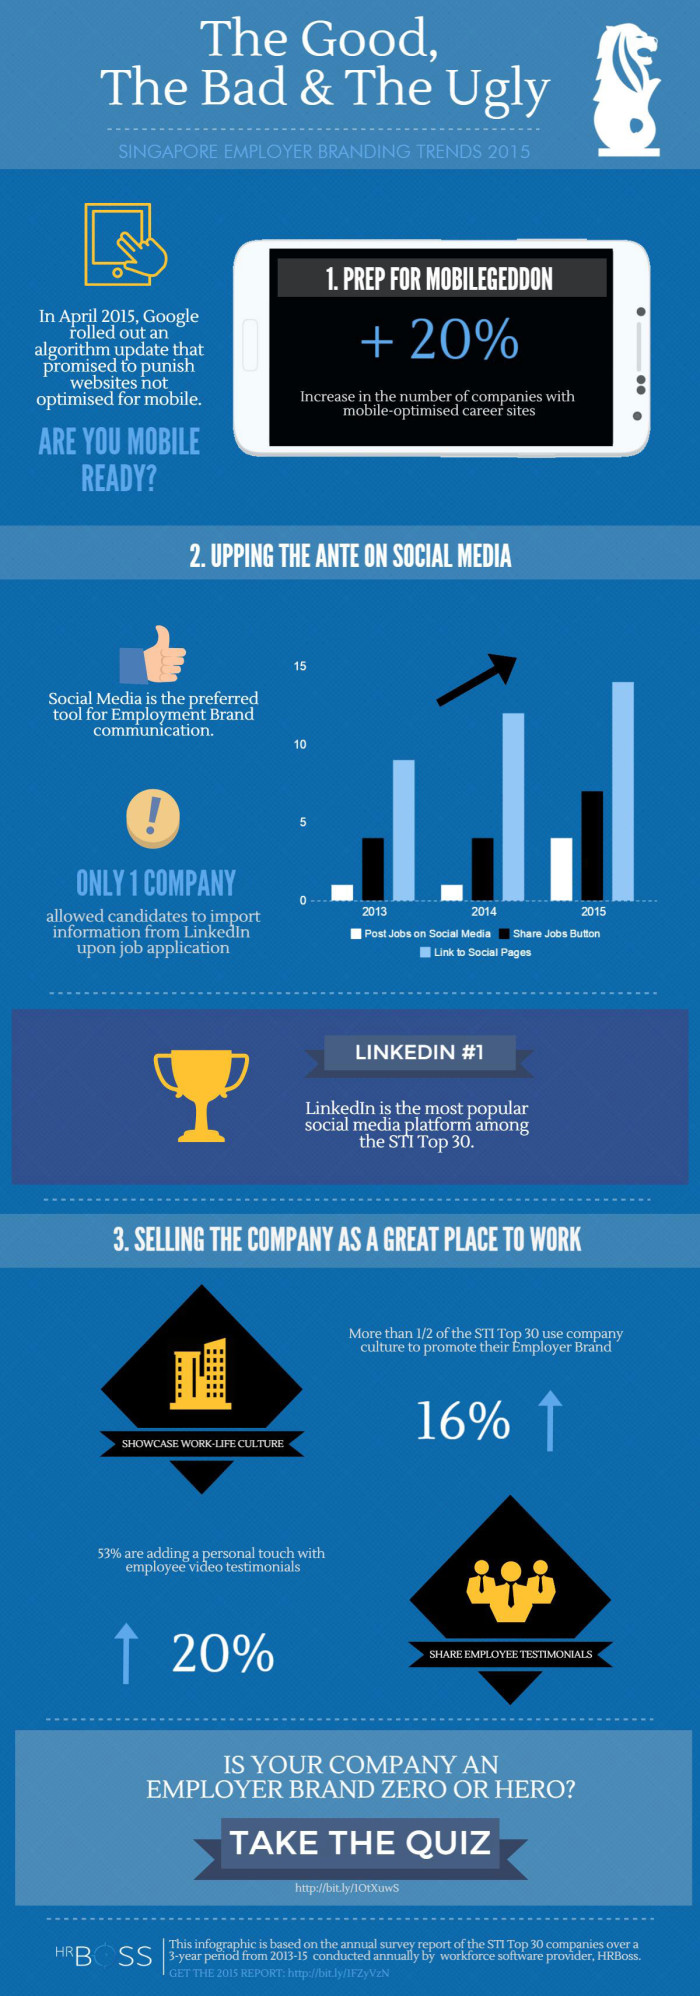 HRBoss infographic on employer branding